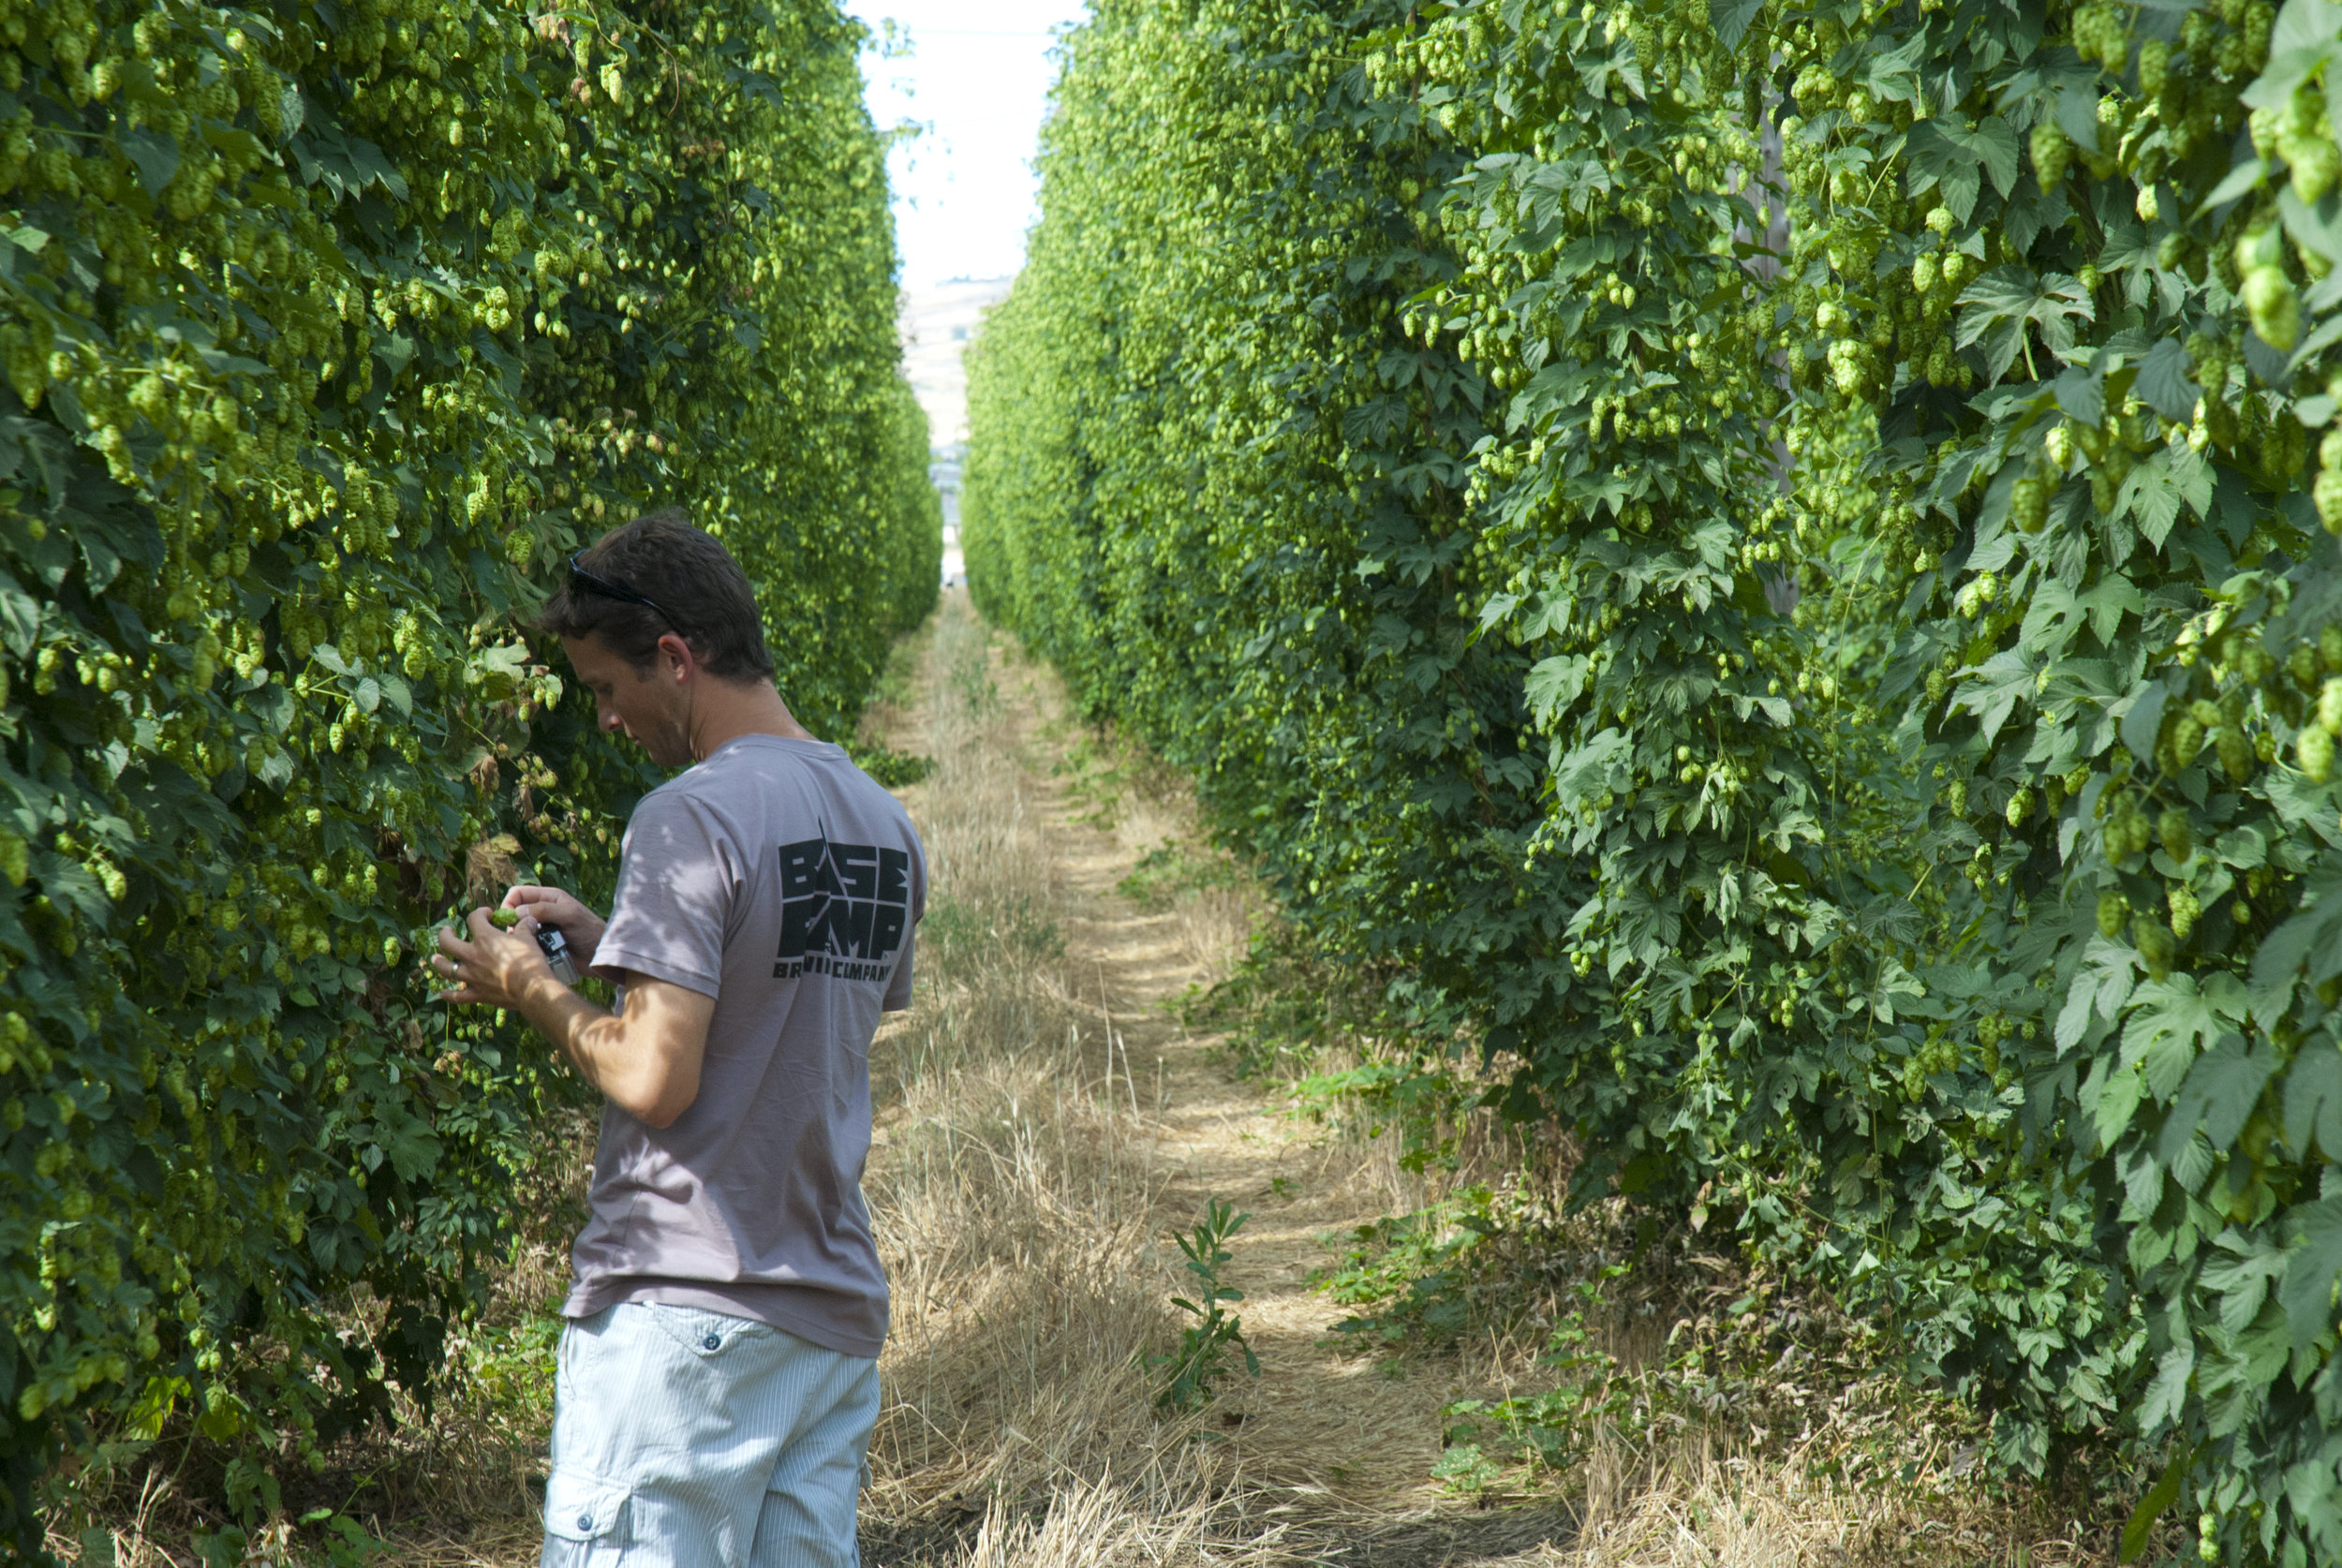 Justin in hops row